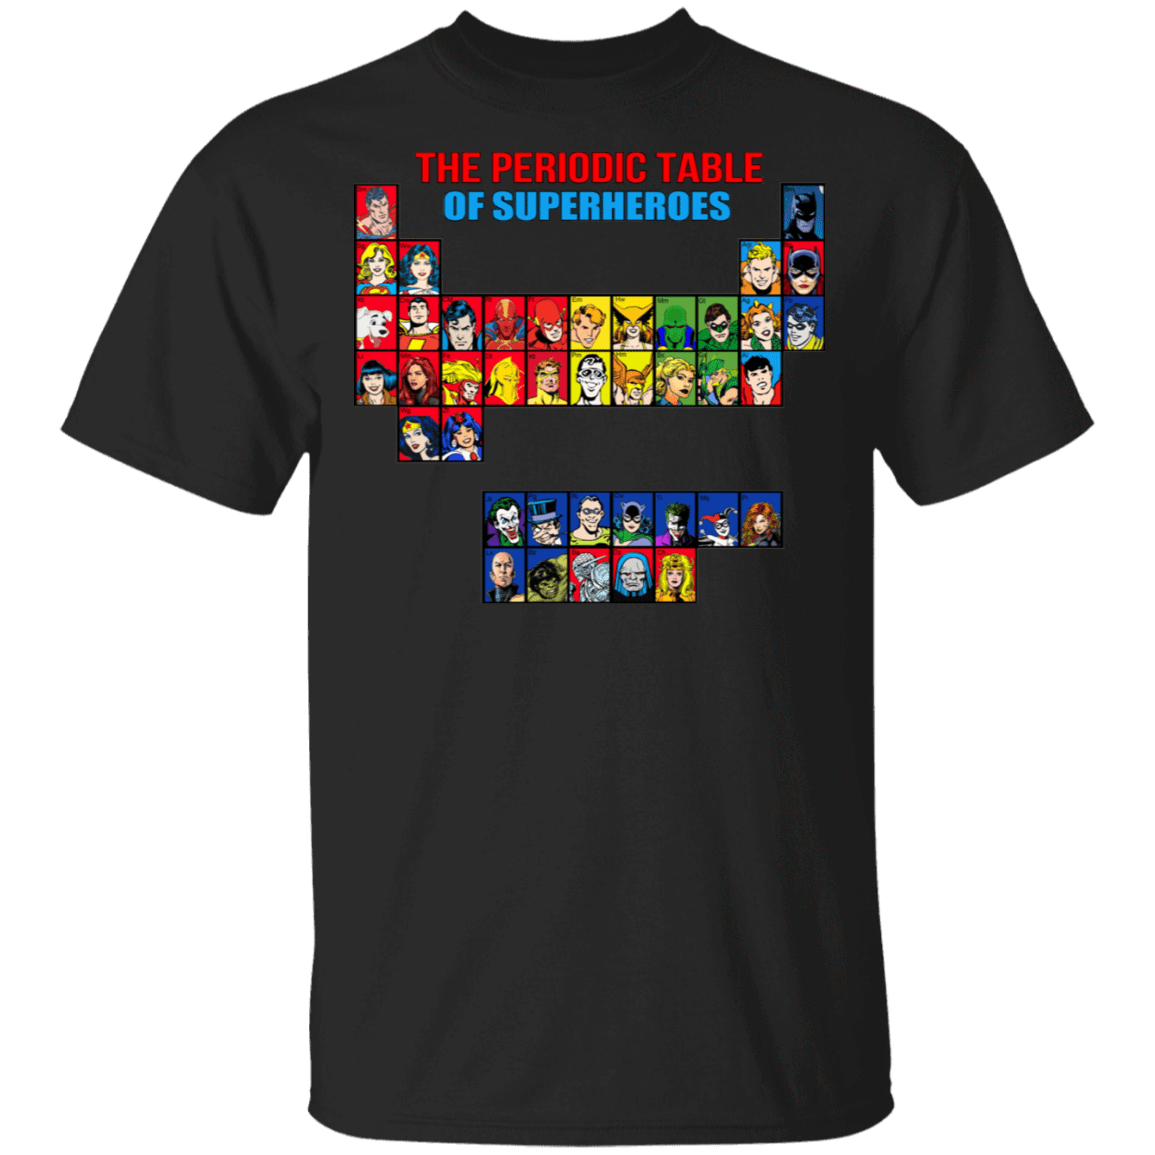 The Periodic Table Of Superheroes T-Shirts, Hoodies, Tank 22-113-79998332-252 - Tee Ript